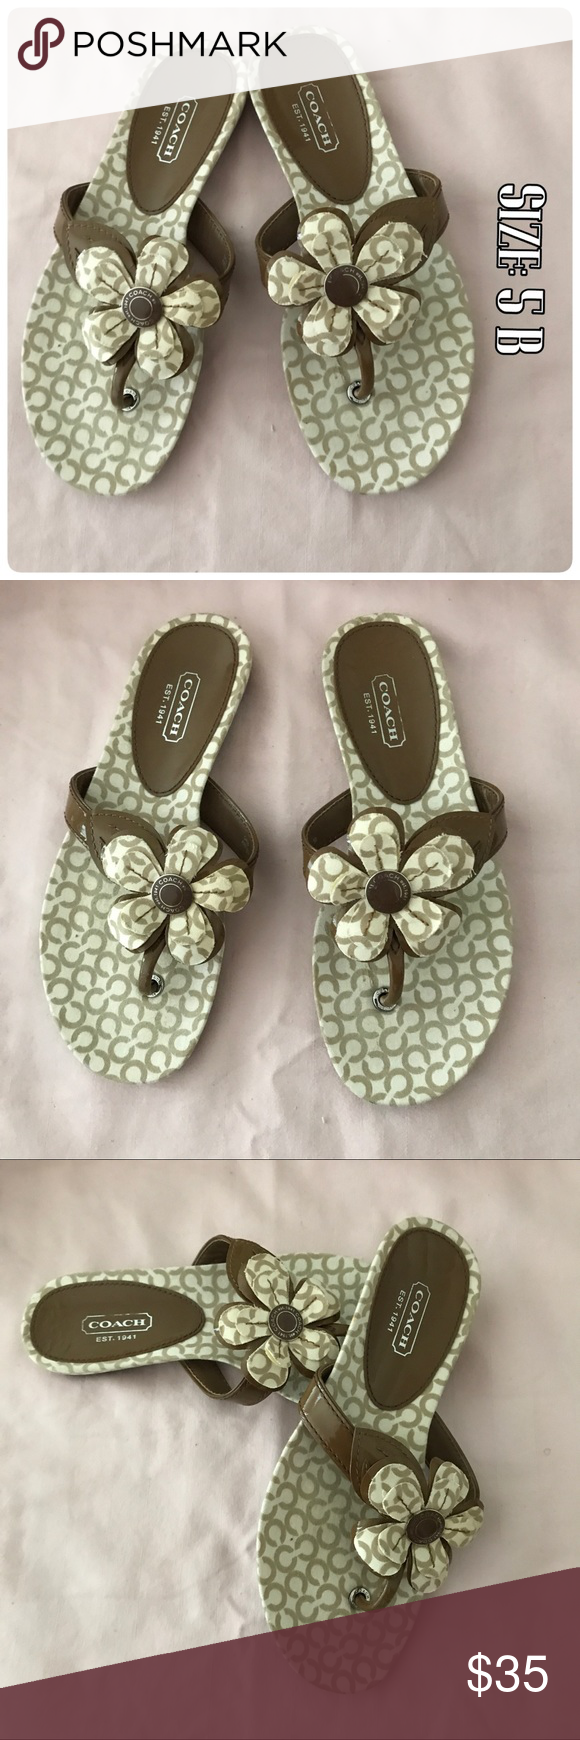 Beautiful Slippers Nwot Beautiful Slippers Coach Shoes